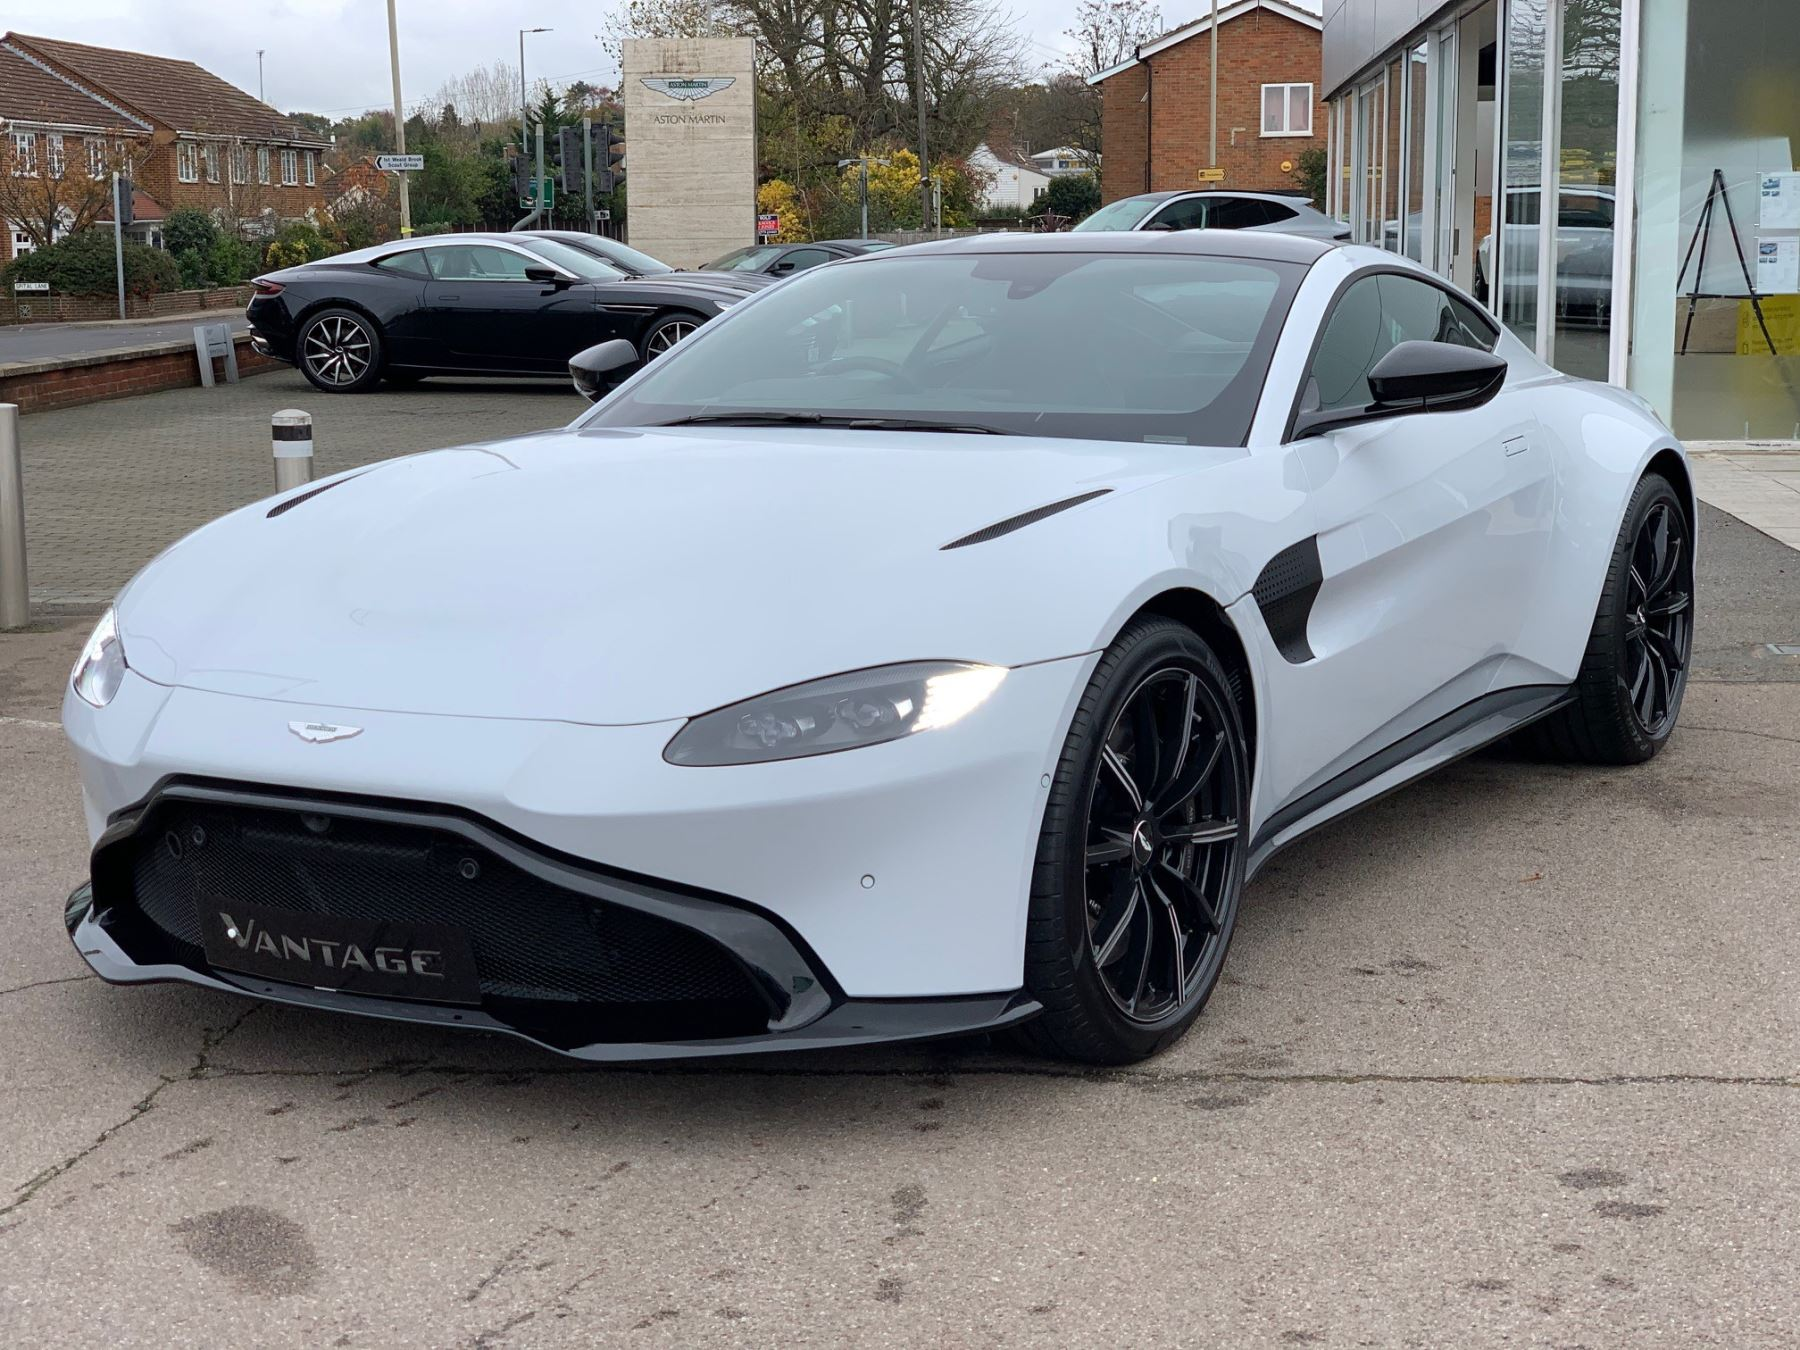 Aston Martin New Vantage White Stone  4.0 Automatic 2 door Coupe